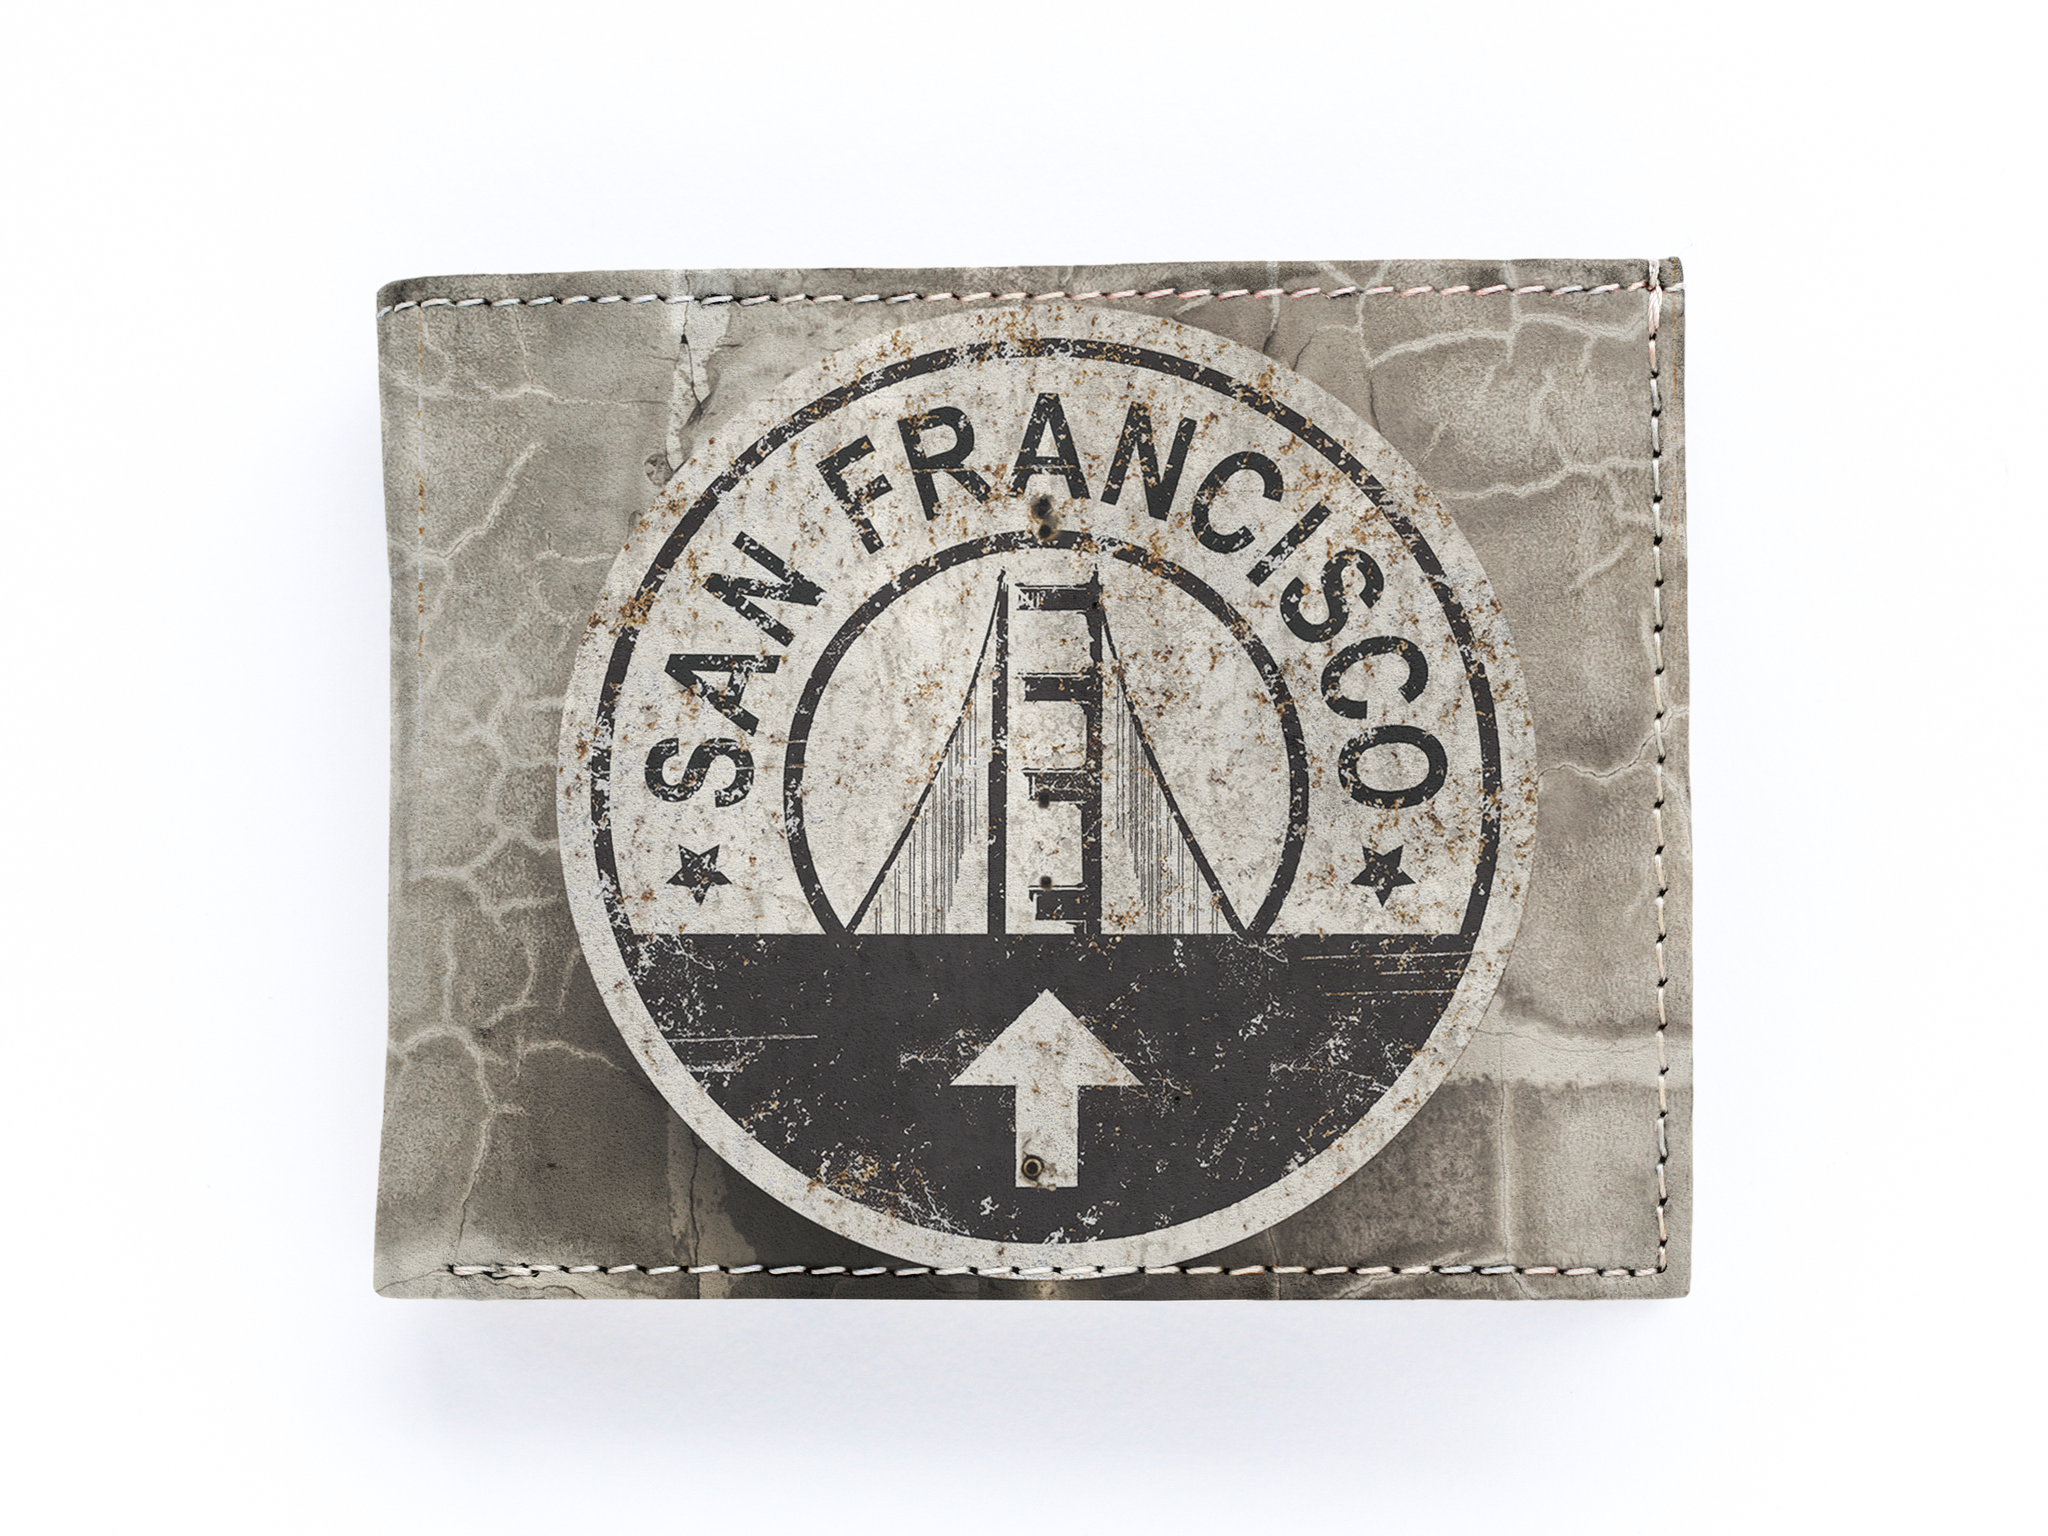 Golden Gate Bridge Sign + San Francisco!!!